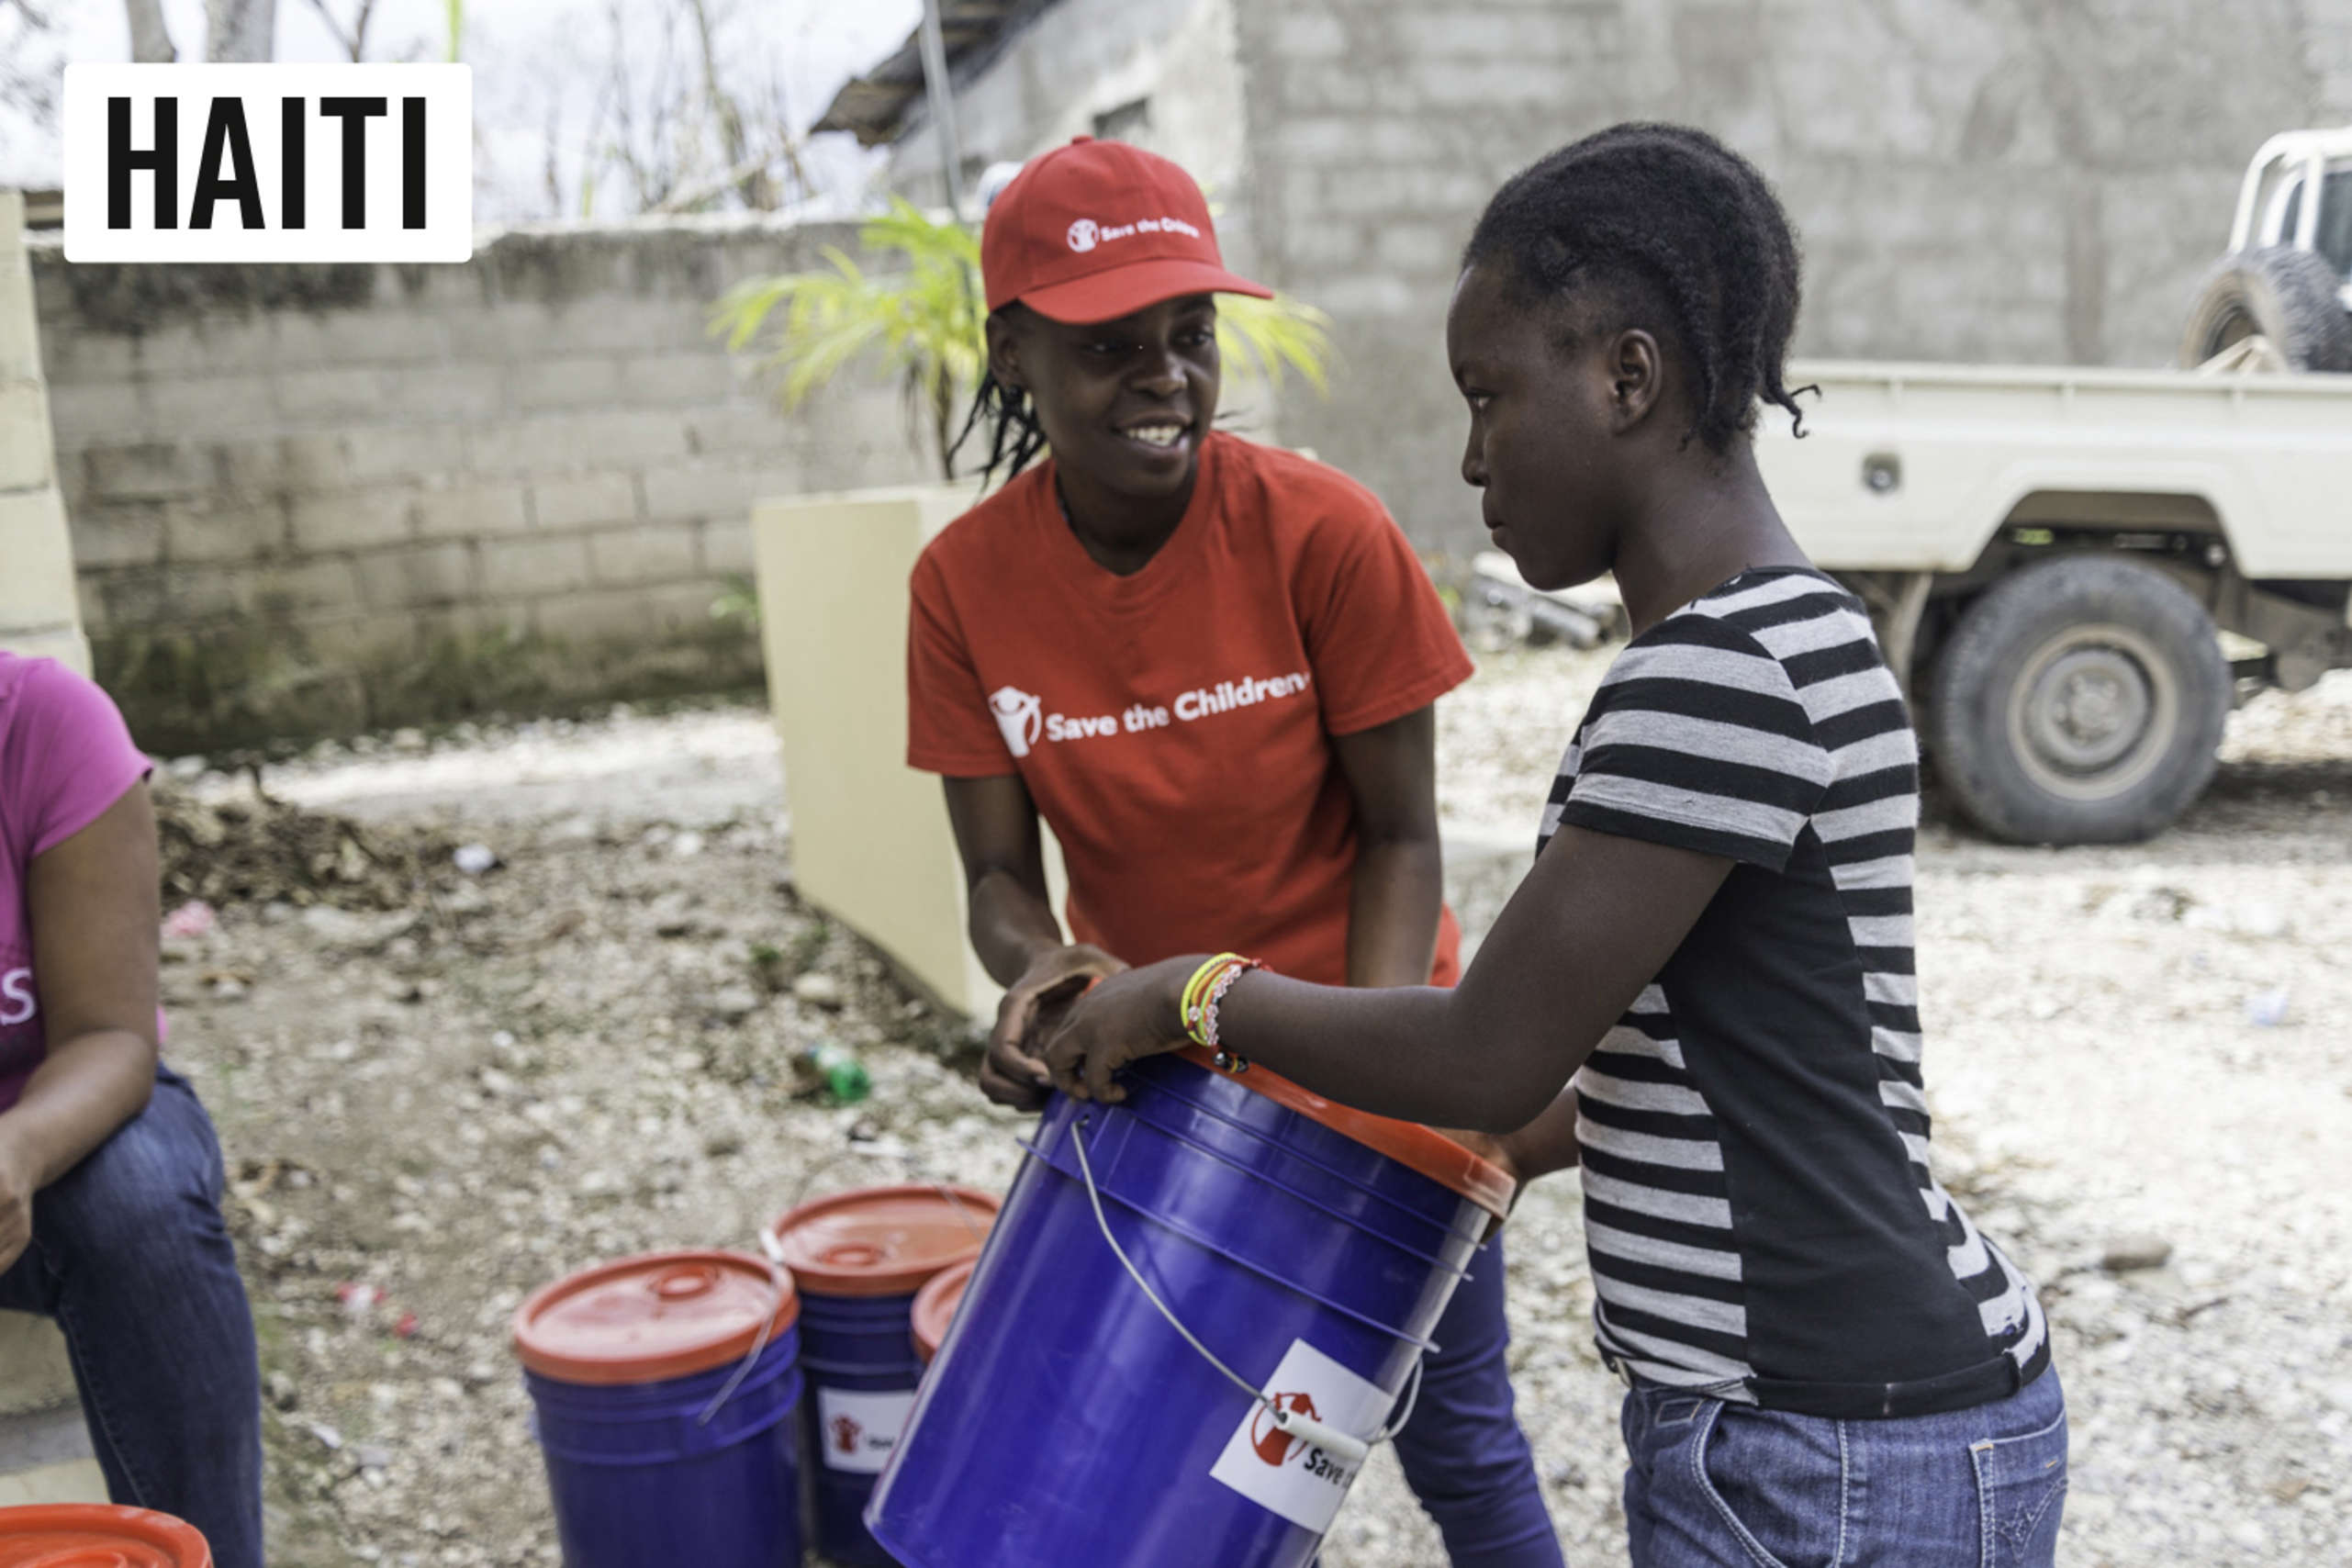 Community Mobilization Officer, Sulfise Jean, is part of a team of emergency responders who provided health and hygiene supplies in the aftermath of the devastating hurricane.